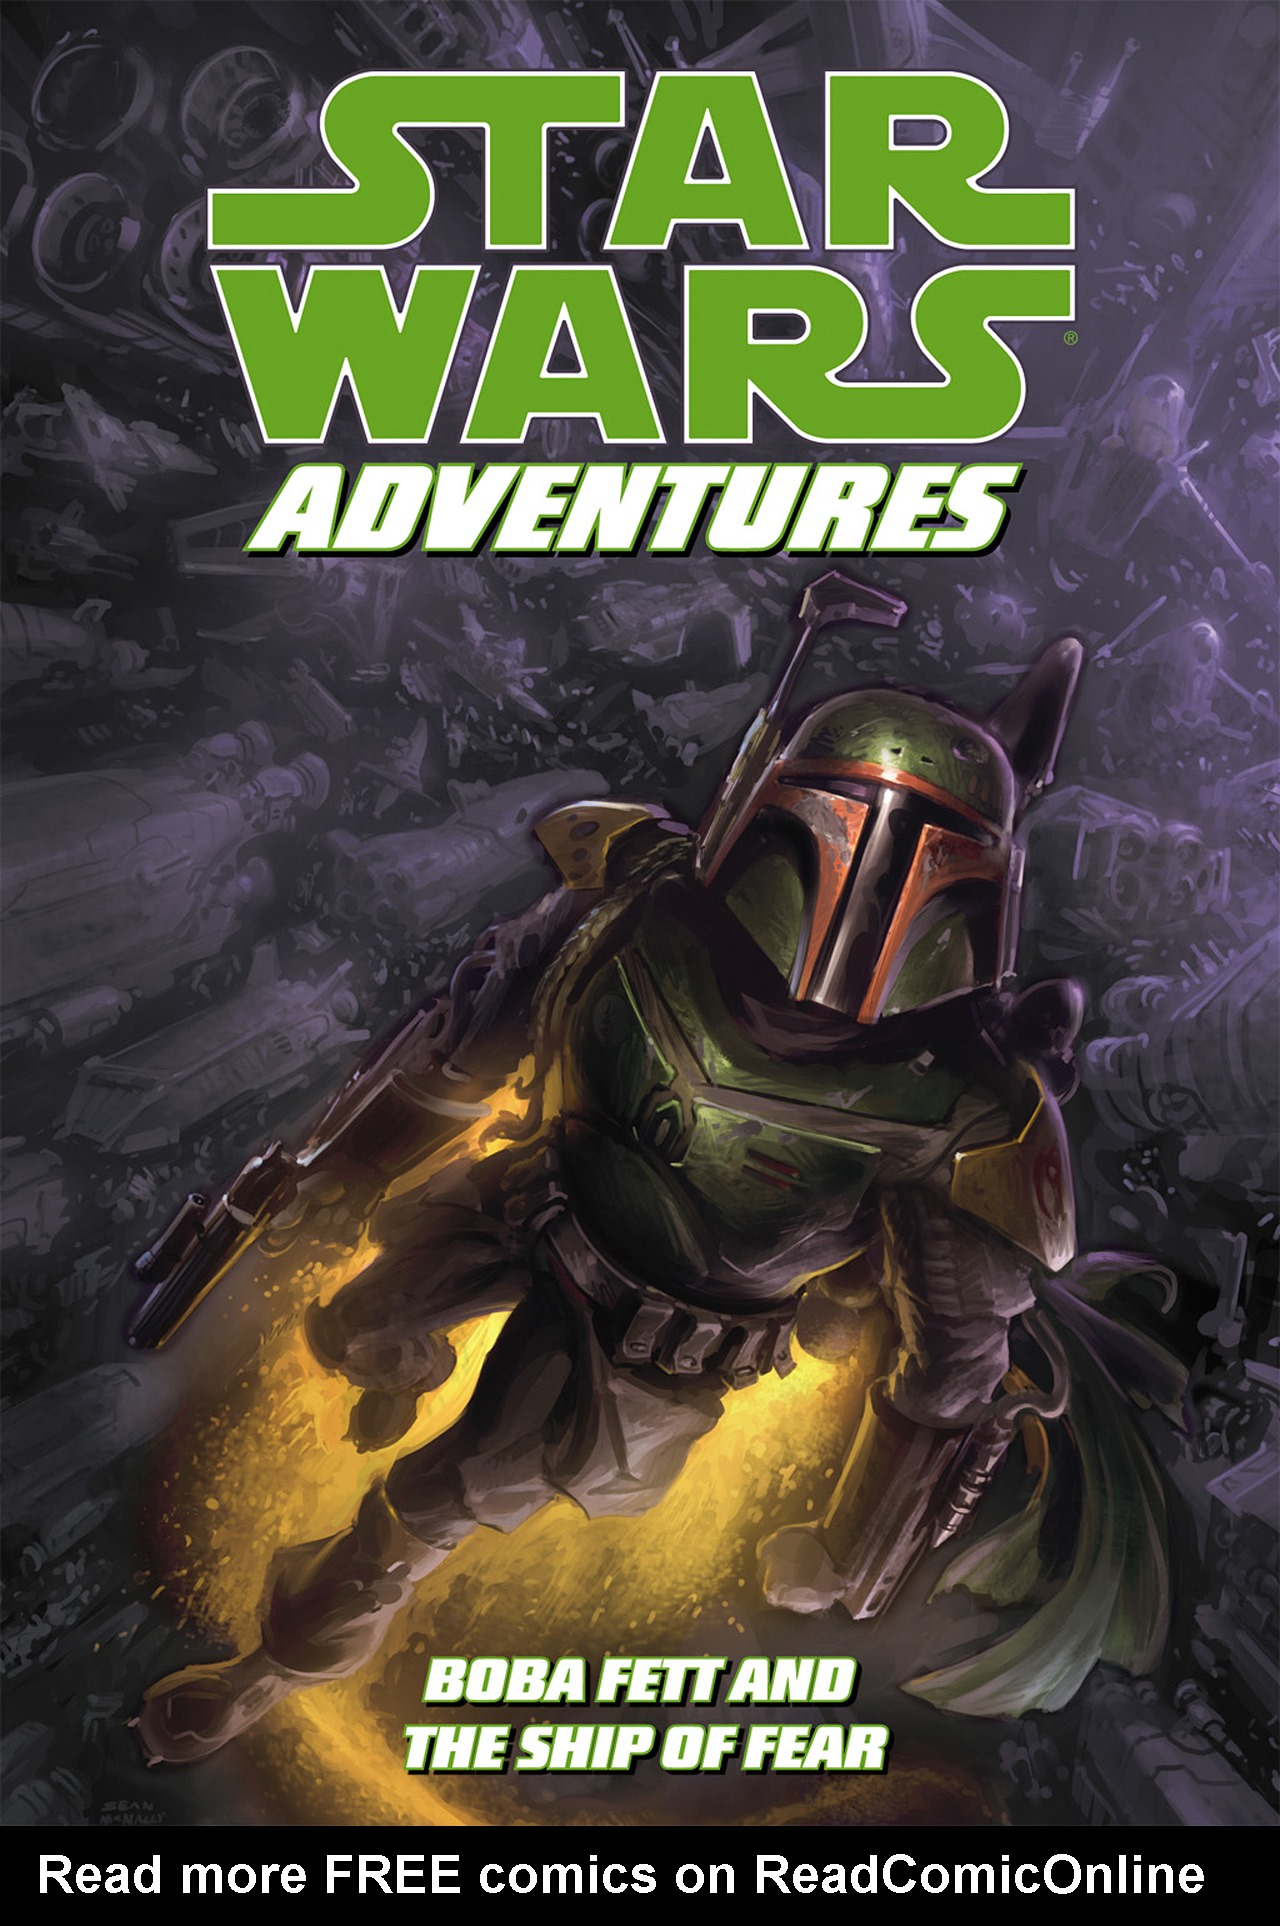 Read online Star Wars Adventures comic -  Issue # Issue Boba Fett and the Ship of Fear - 1